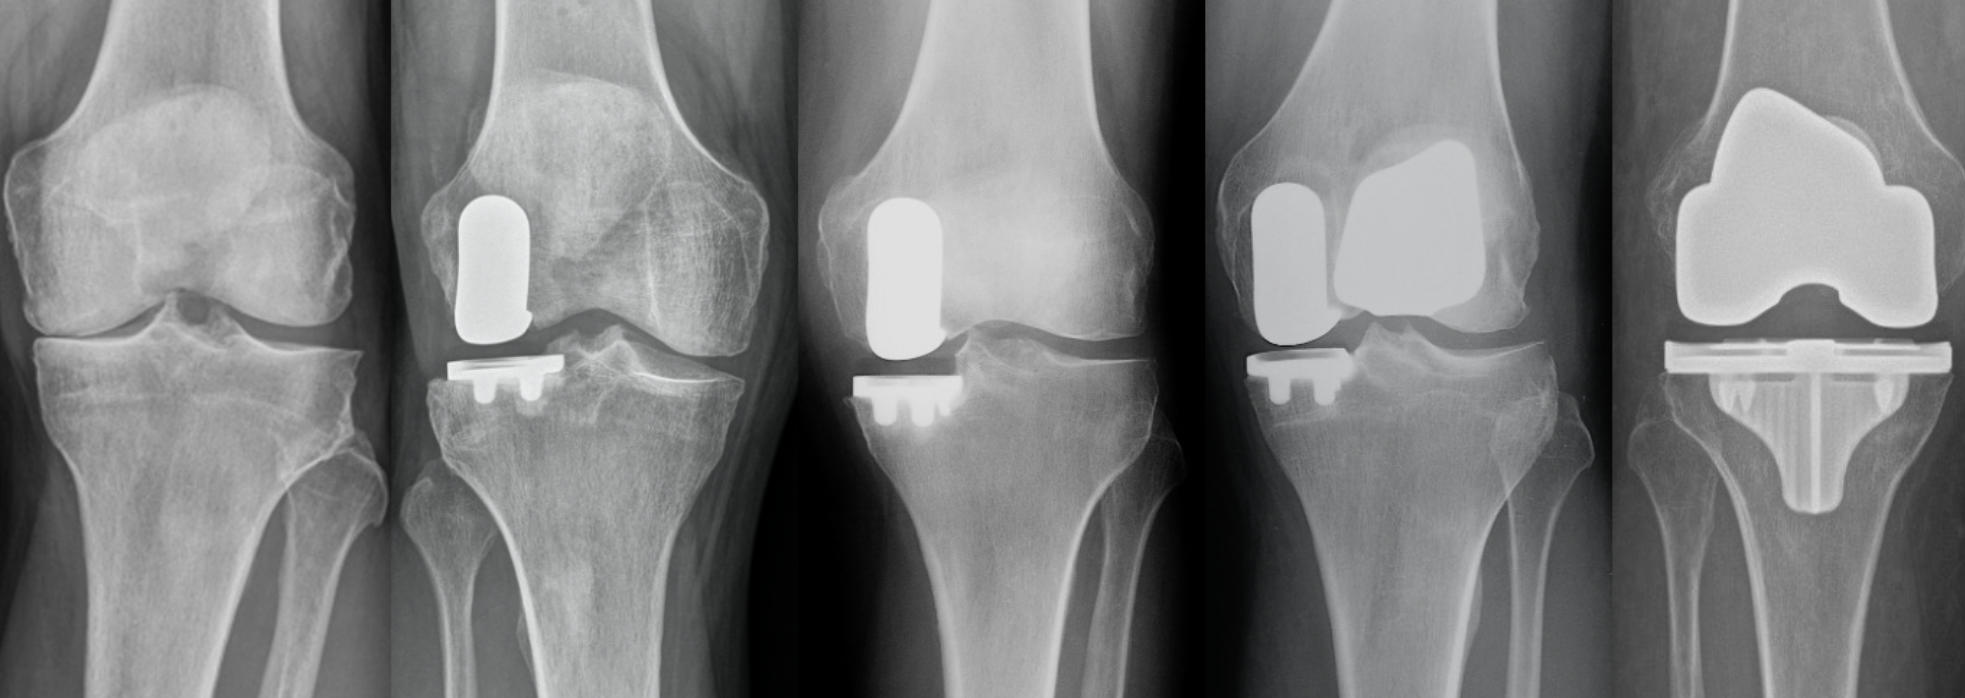 X-rays of knee joint before and after robotic knee replacement surgery